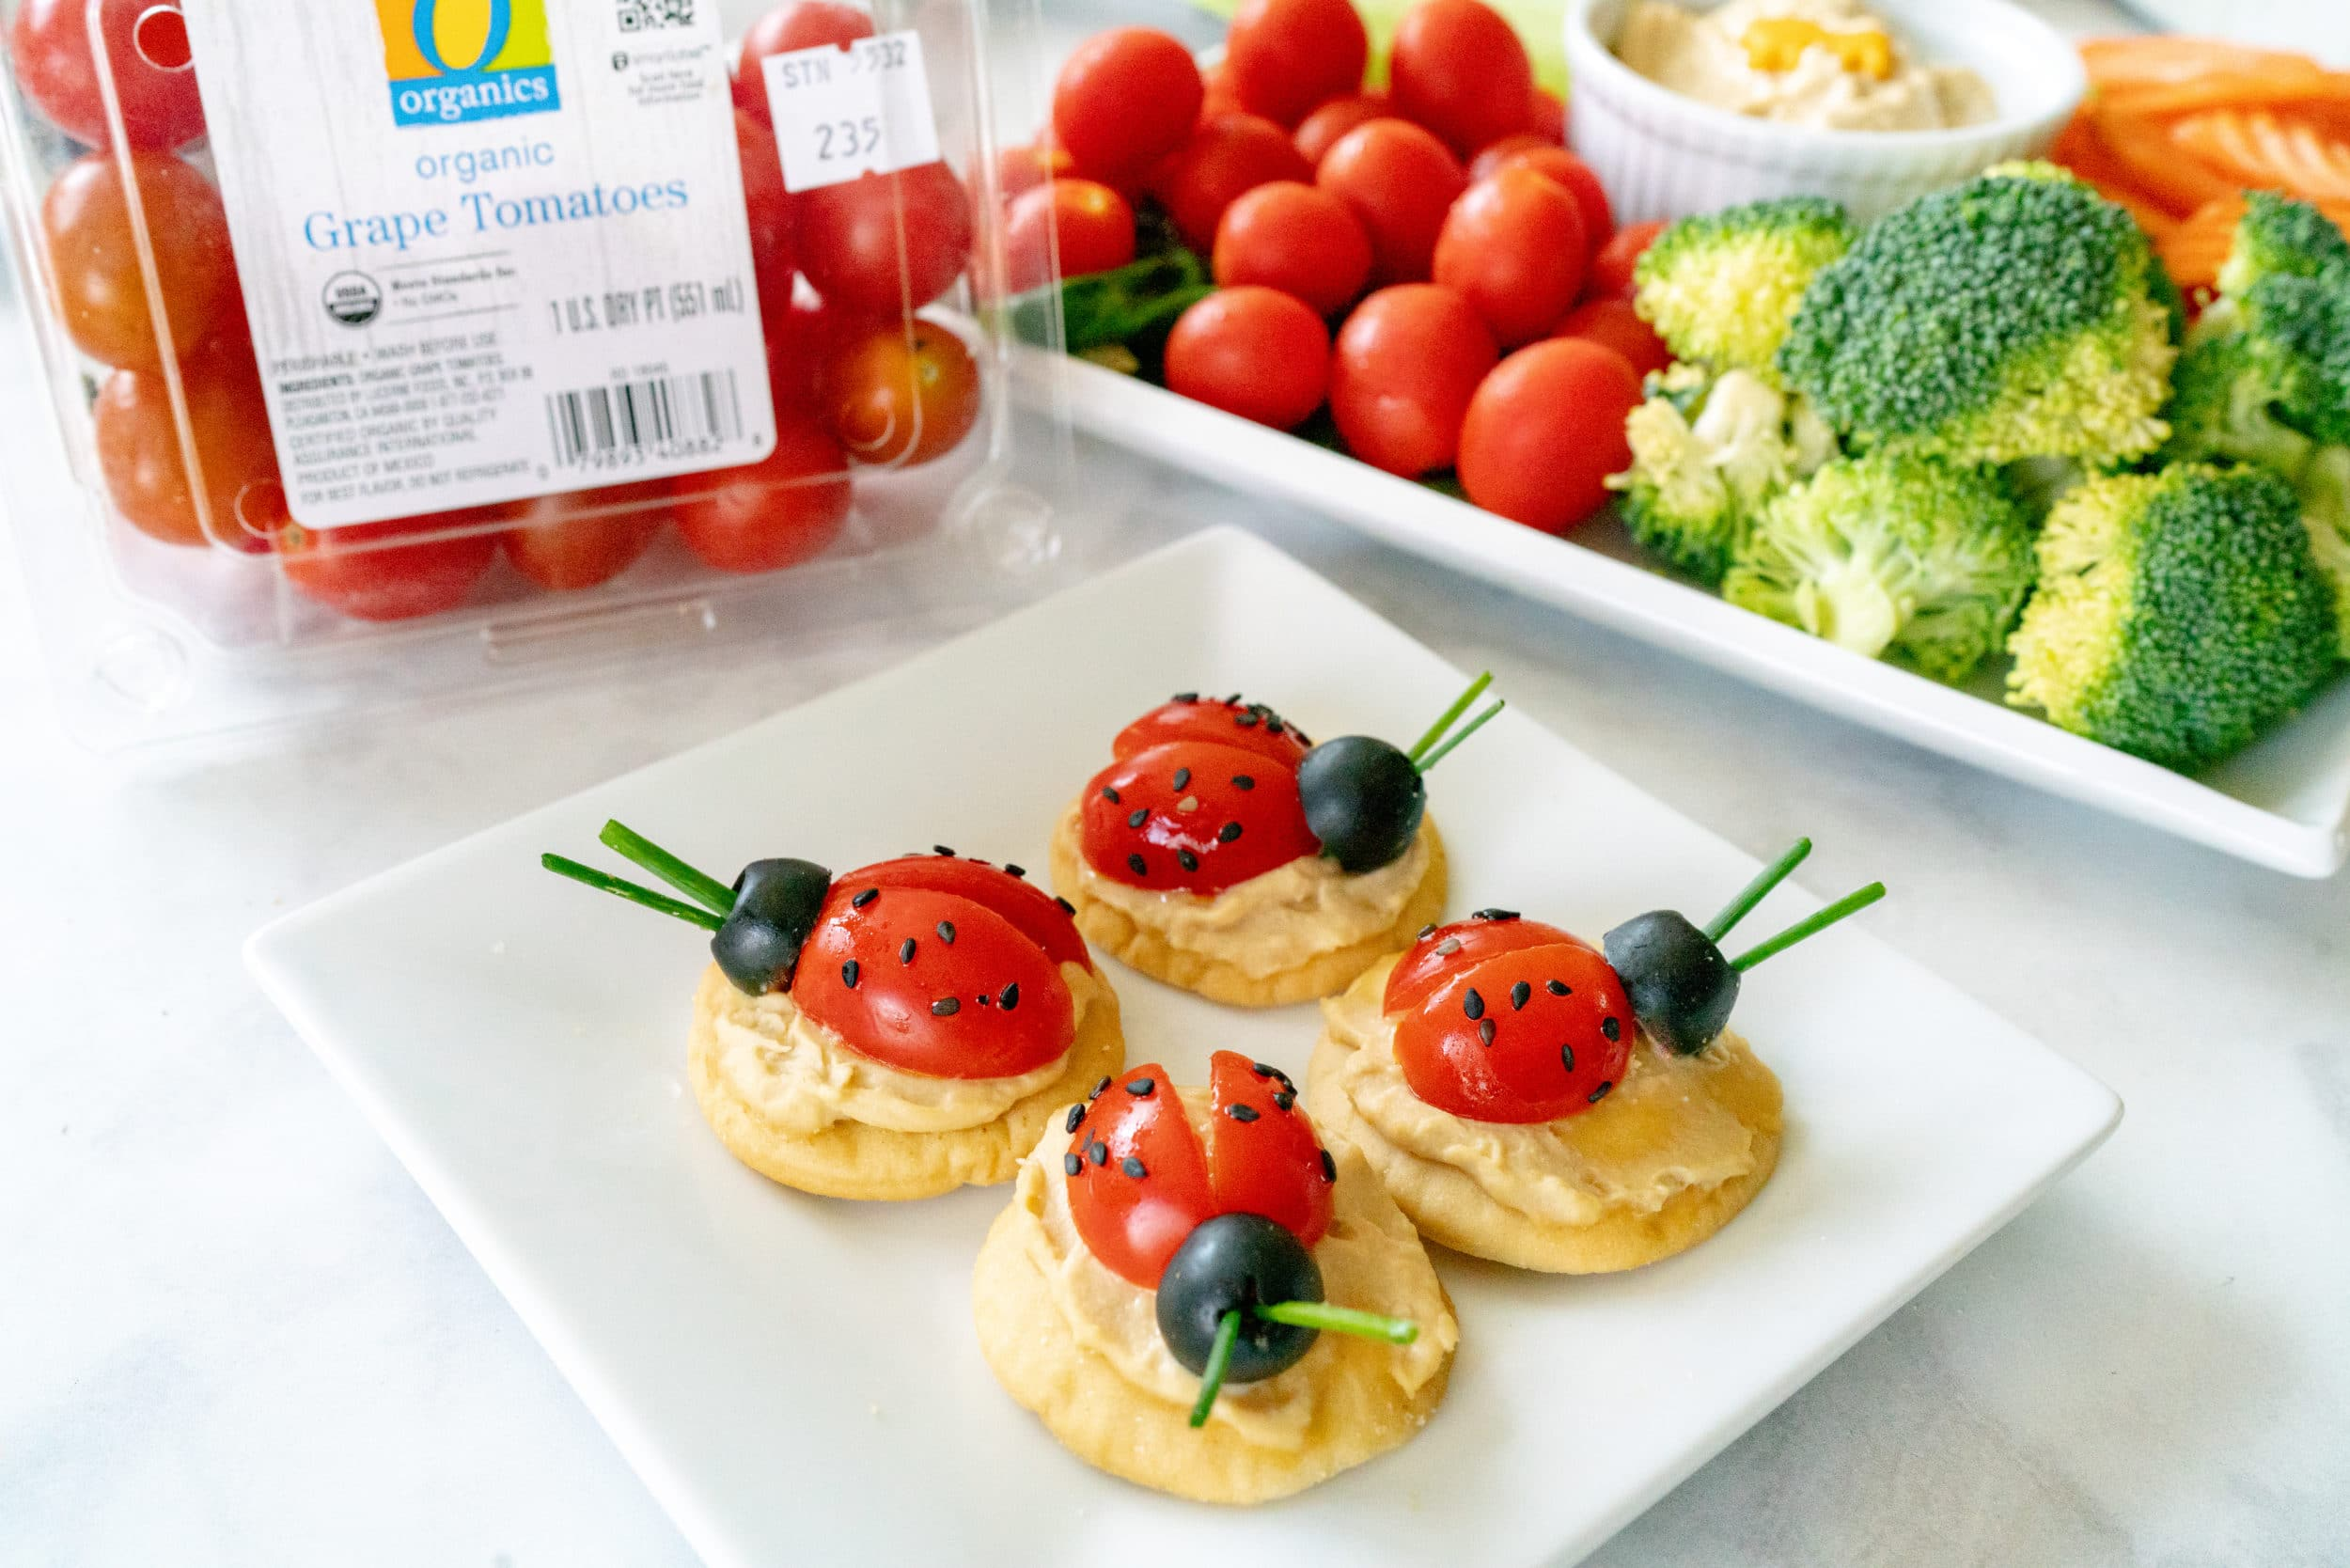 Grape tomato ladybug recipe